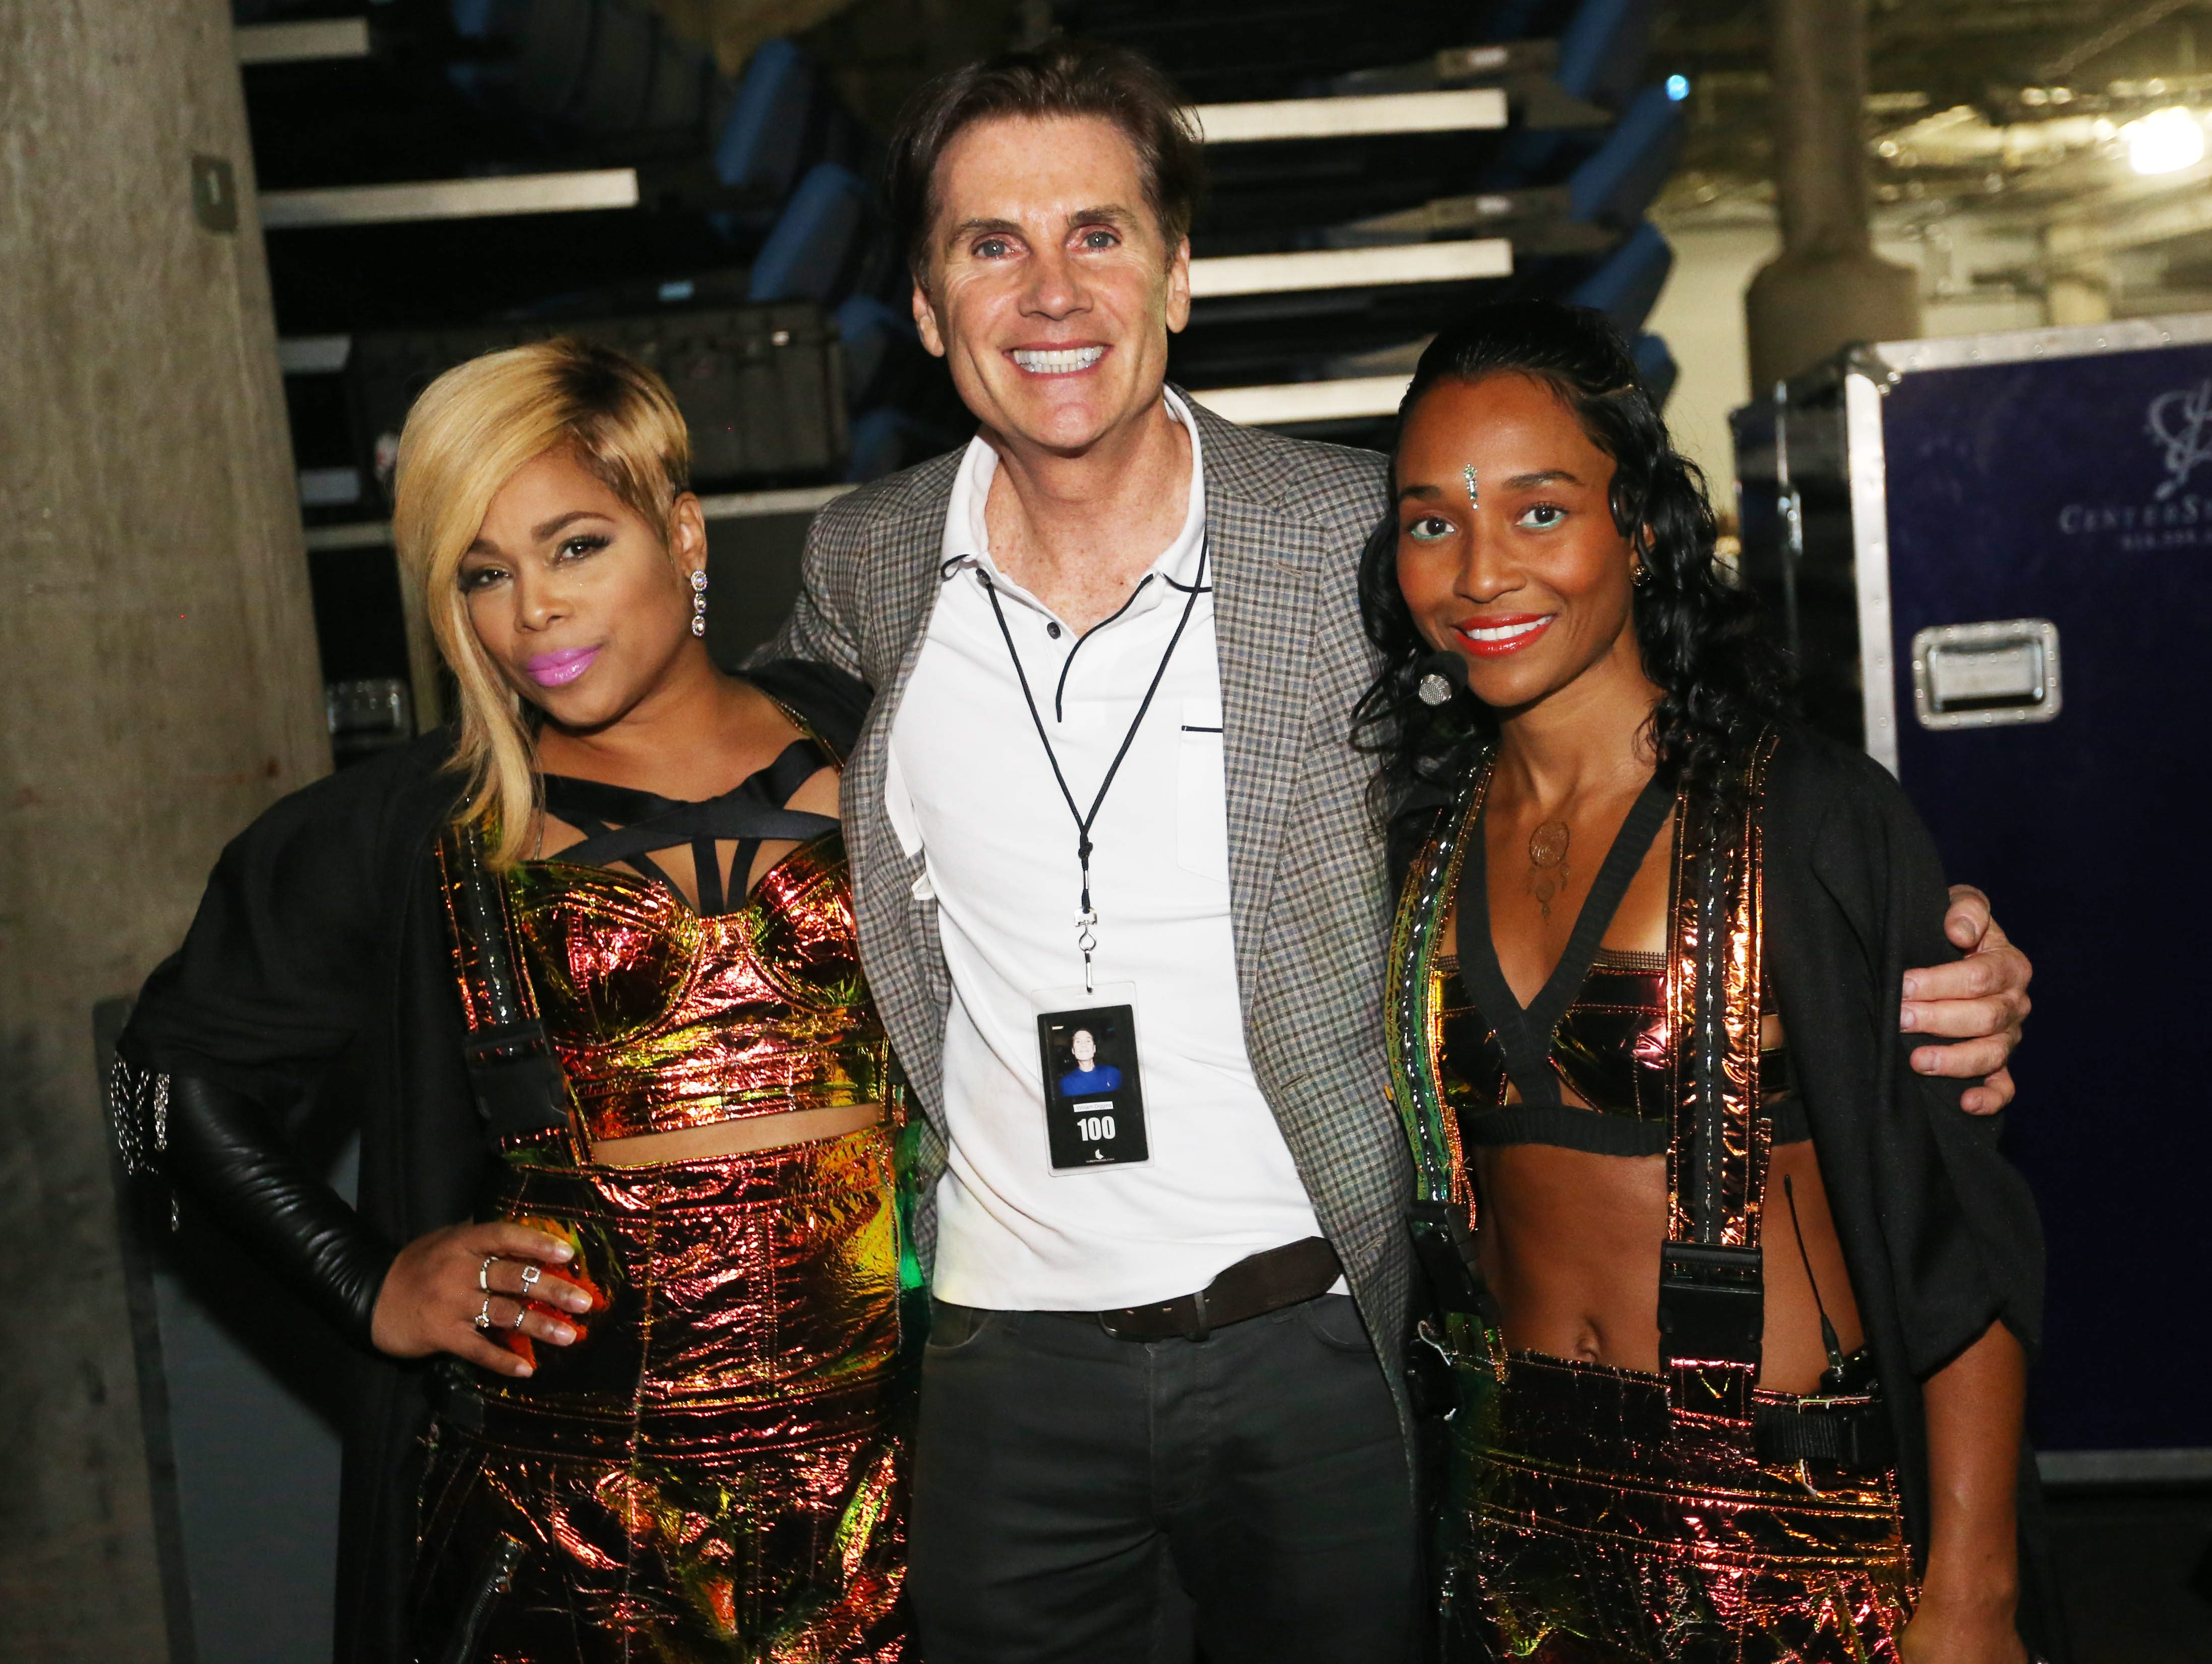 TLC's longtime manager Bill Diggins with T-Boz, left, and Chilli, grew up in Buffalo. Diggins uses a management system for TLC's business that generates weekly financial reports. Through last week, TLC's tour expenses were 20 percent under budget.